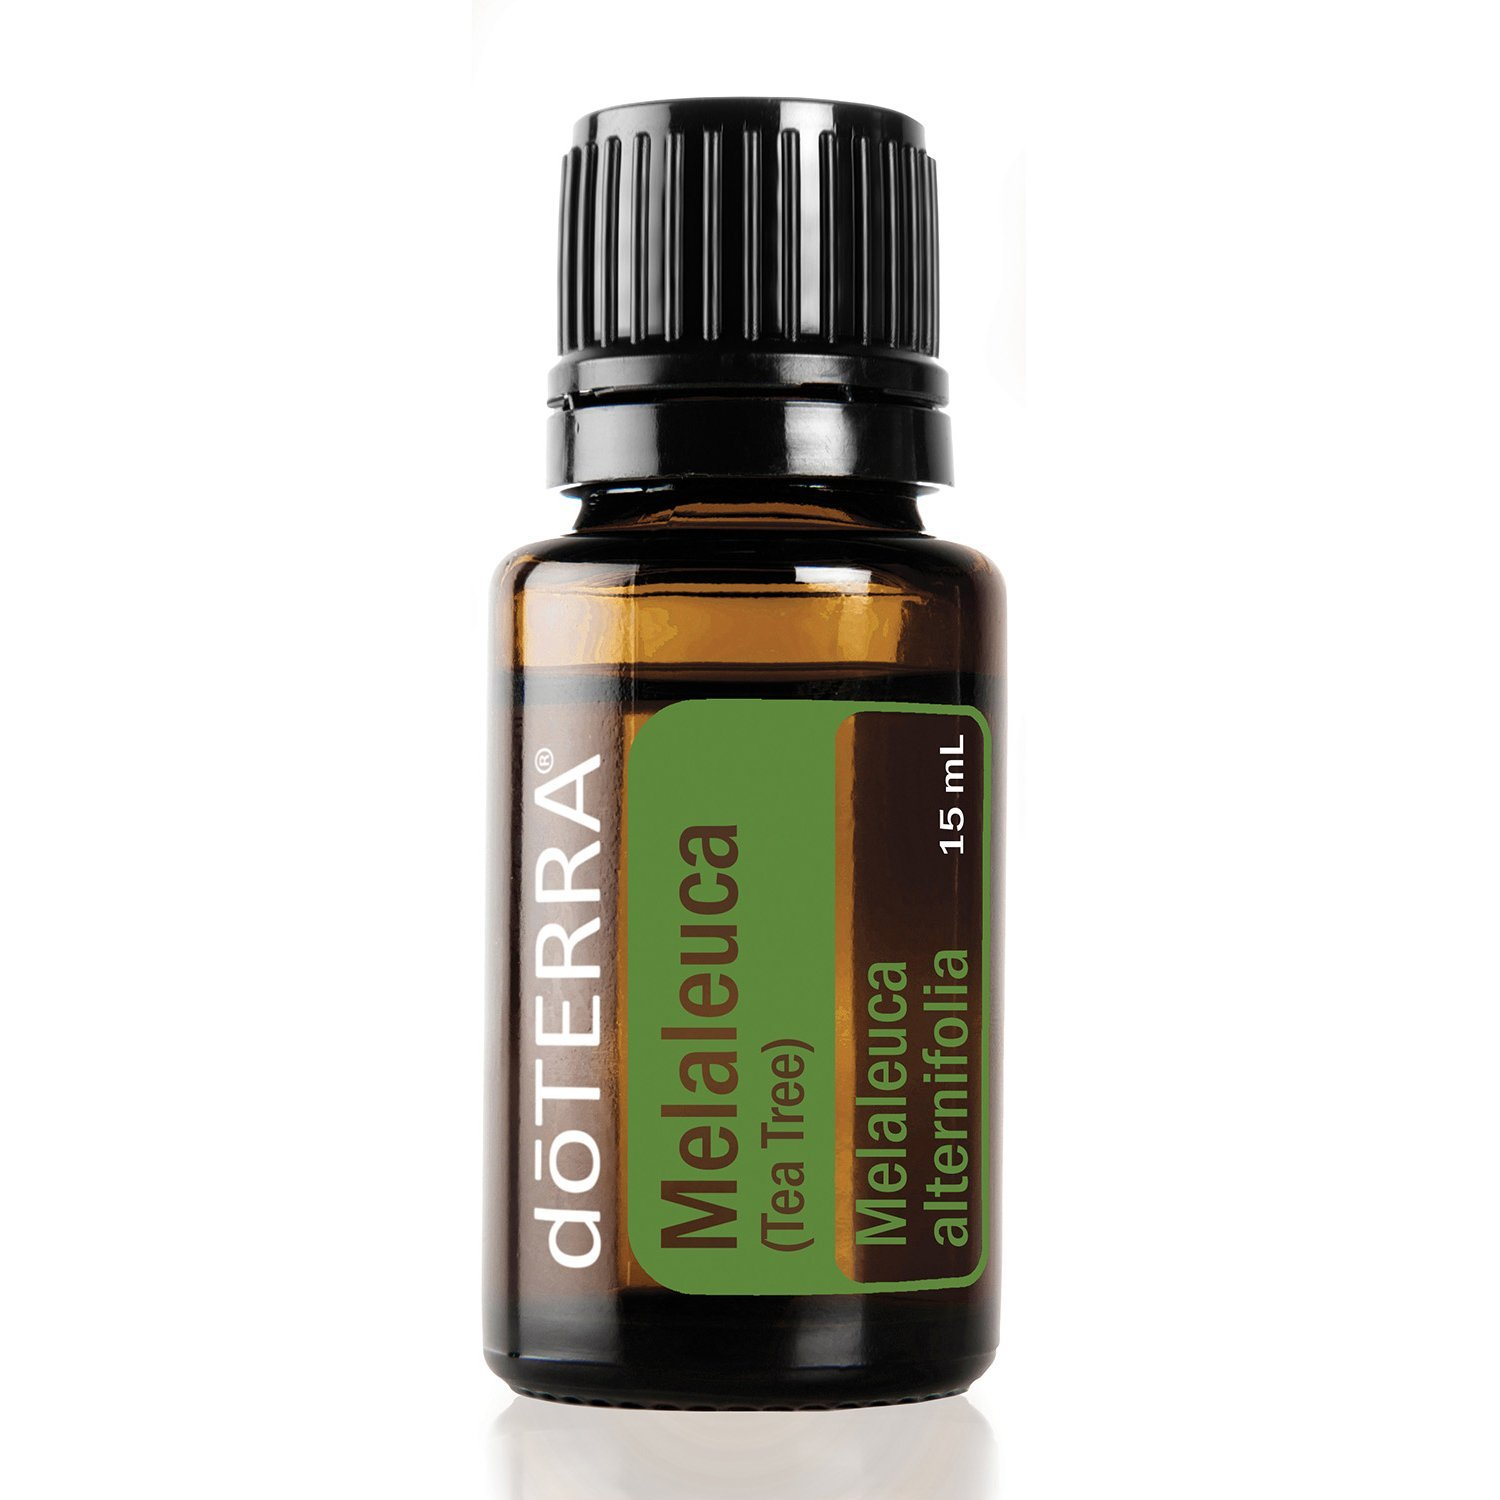 doTERRA Melaleuca Essential Oil - Promotes Healthy Immune Function, Seasonal Protection, Cleansing and Rejuvenating Effect on Skin; For Diffusion, Internal, or Topical Use - 15 ml